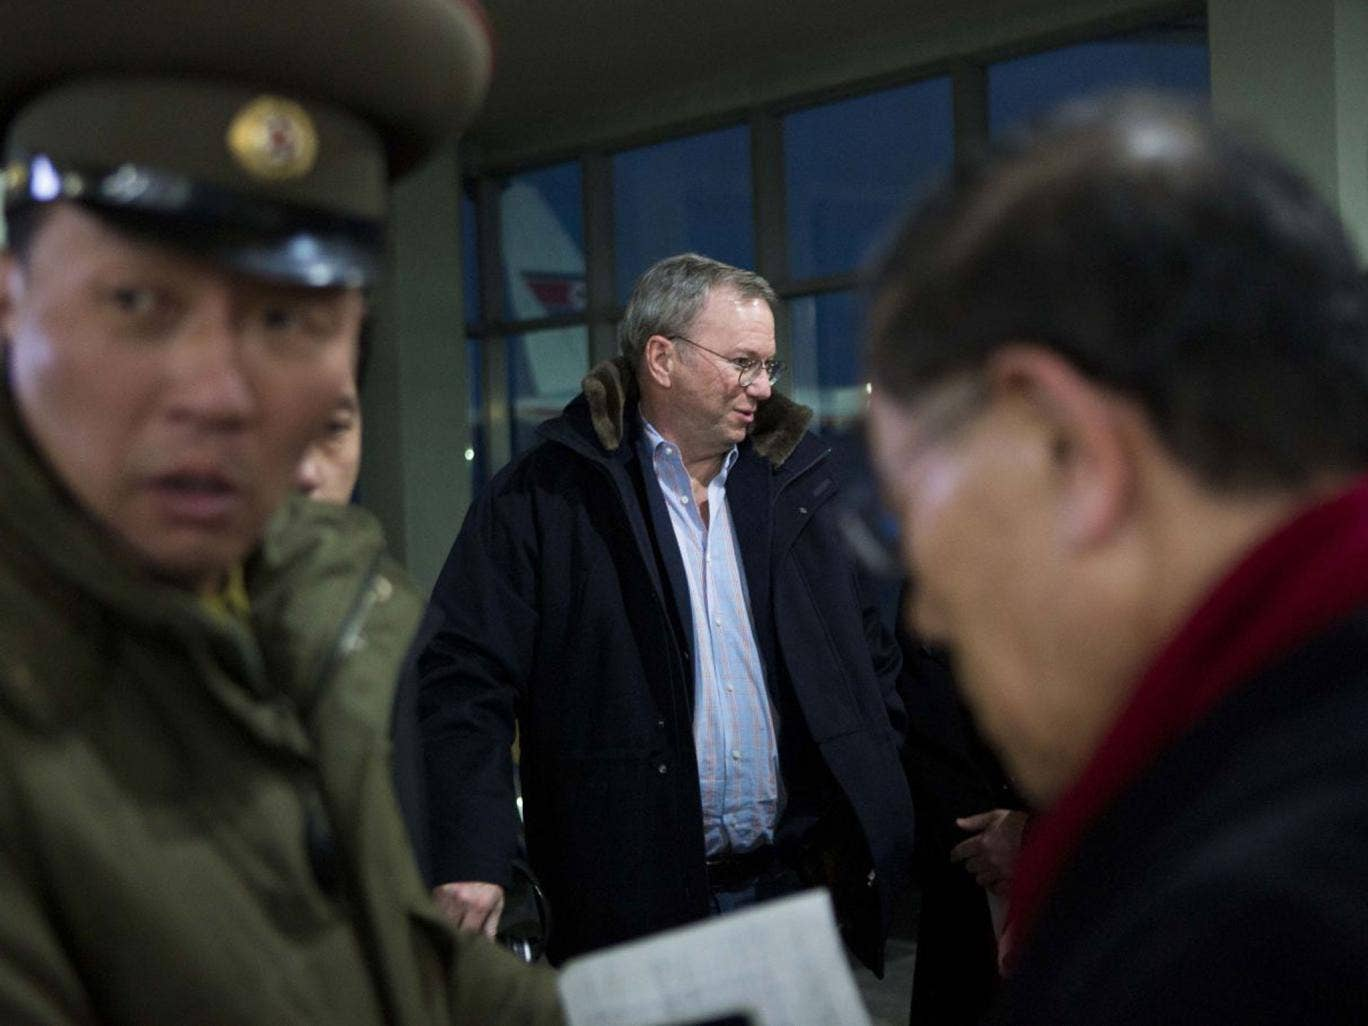 The Google chairman Eric Schmidt arrived in North Korea yesterday saying he wanted a first-hand look at the country's economy and media